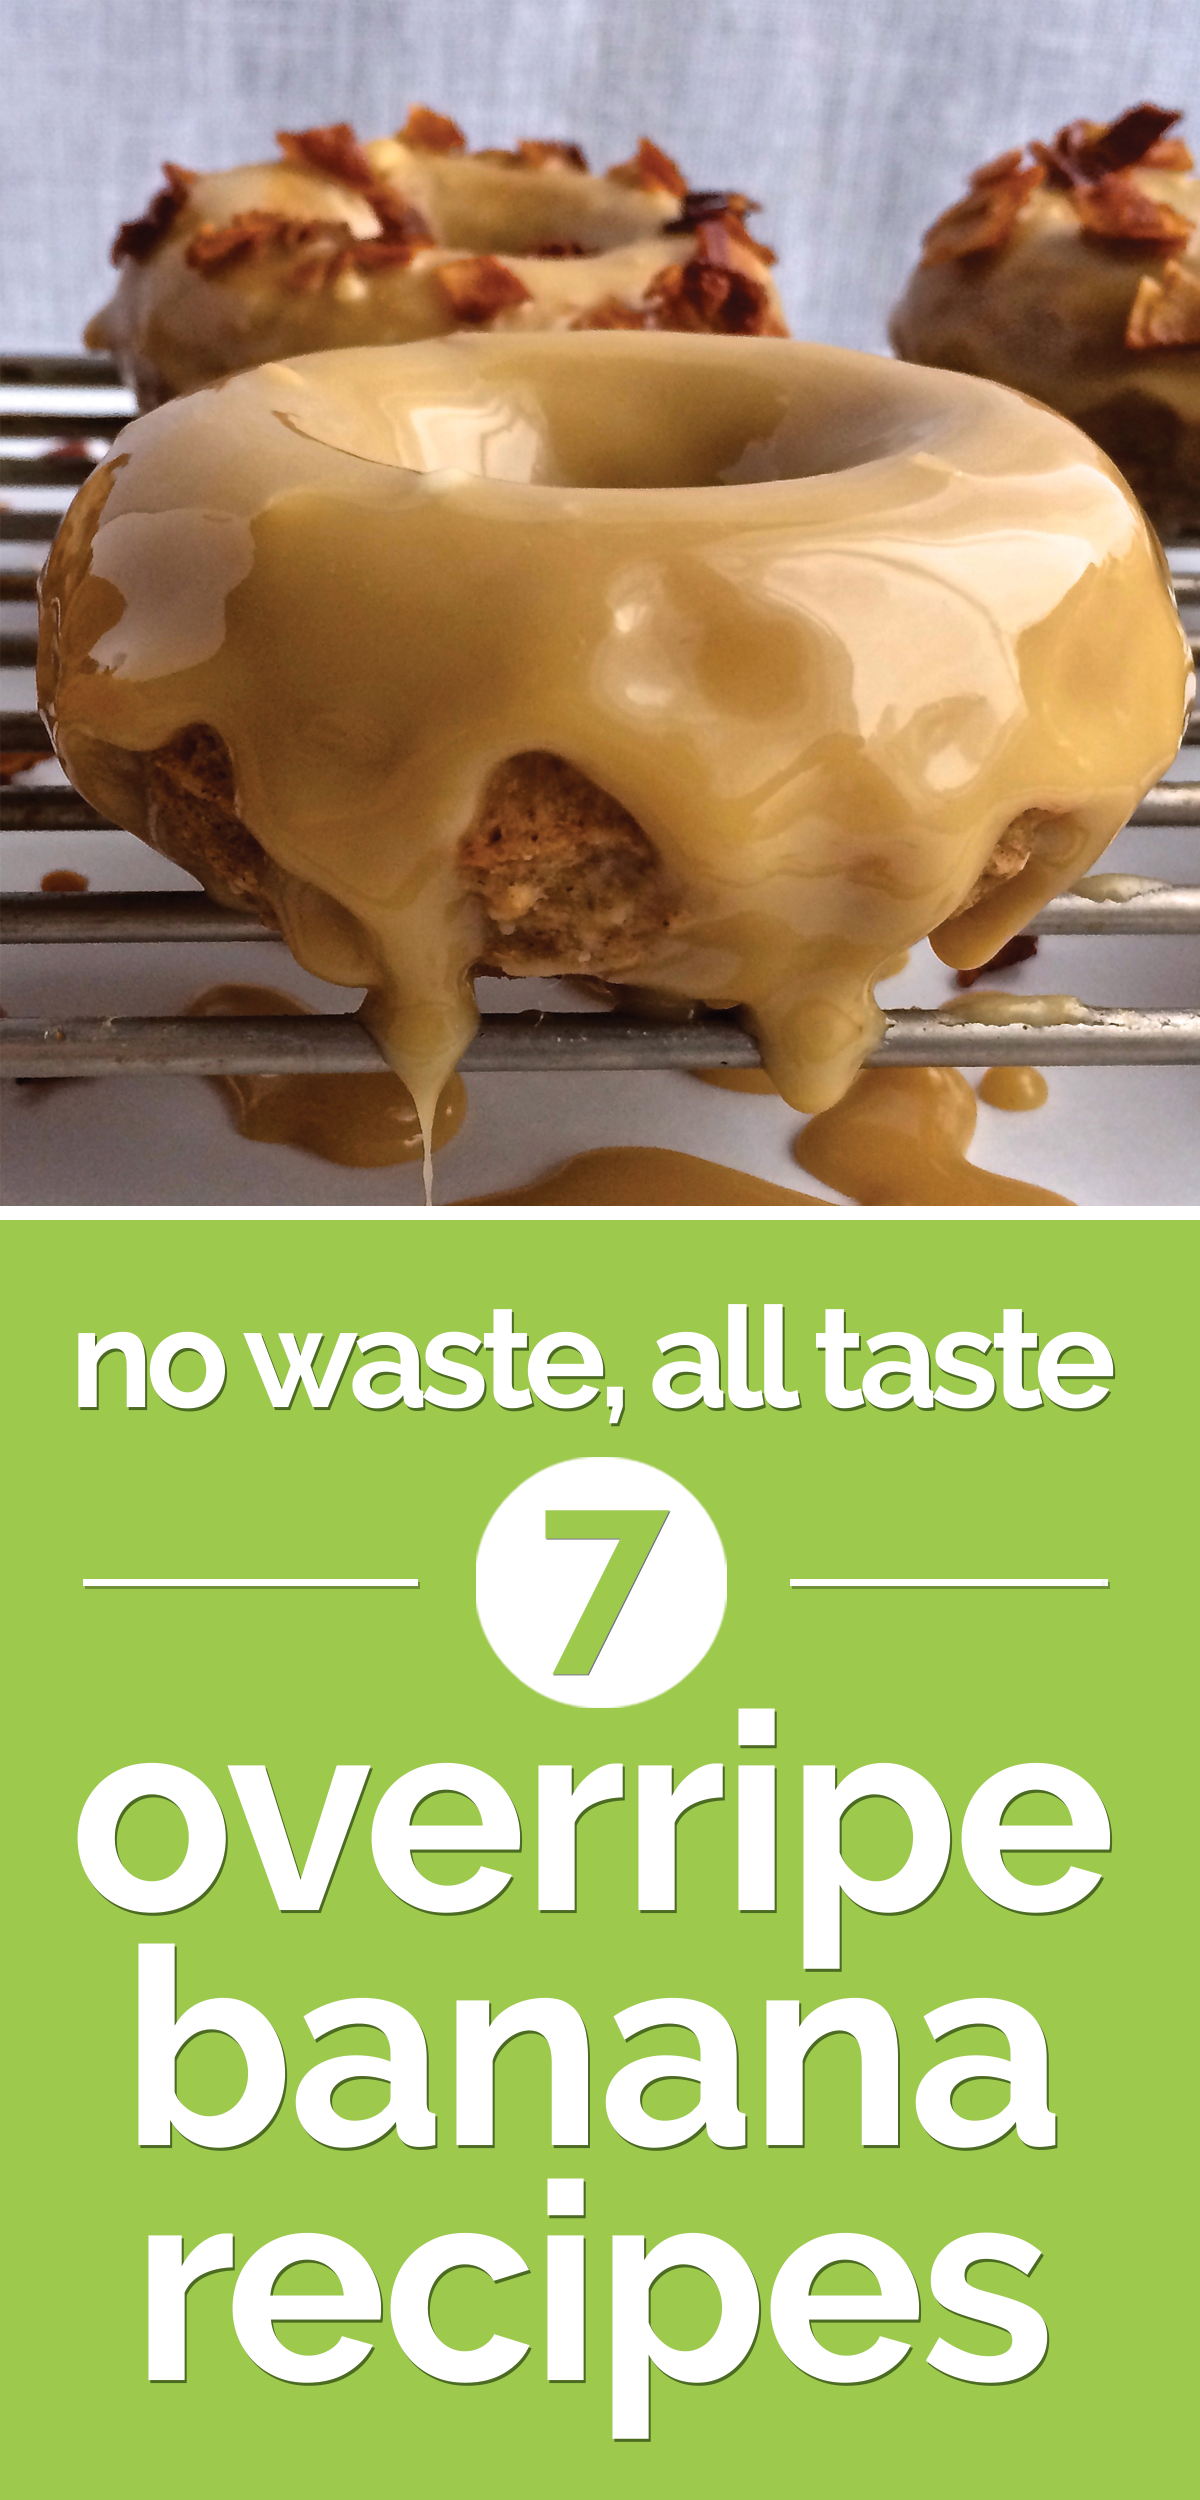 No Waste, All Taste: 7 Overripe Banana Recipes | the good stuff